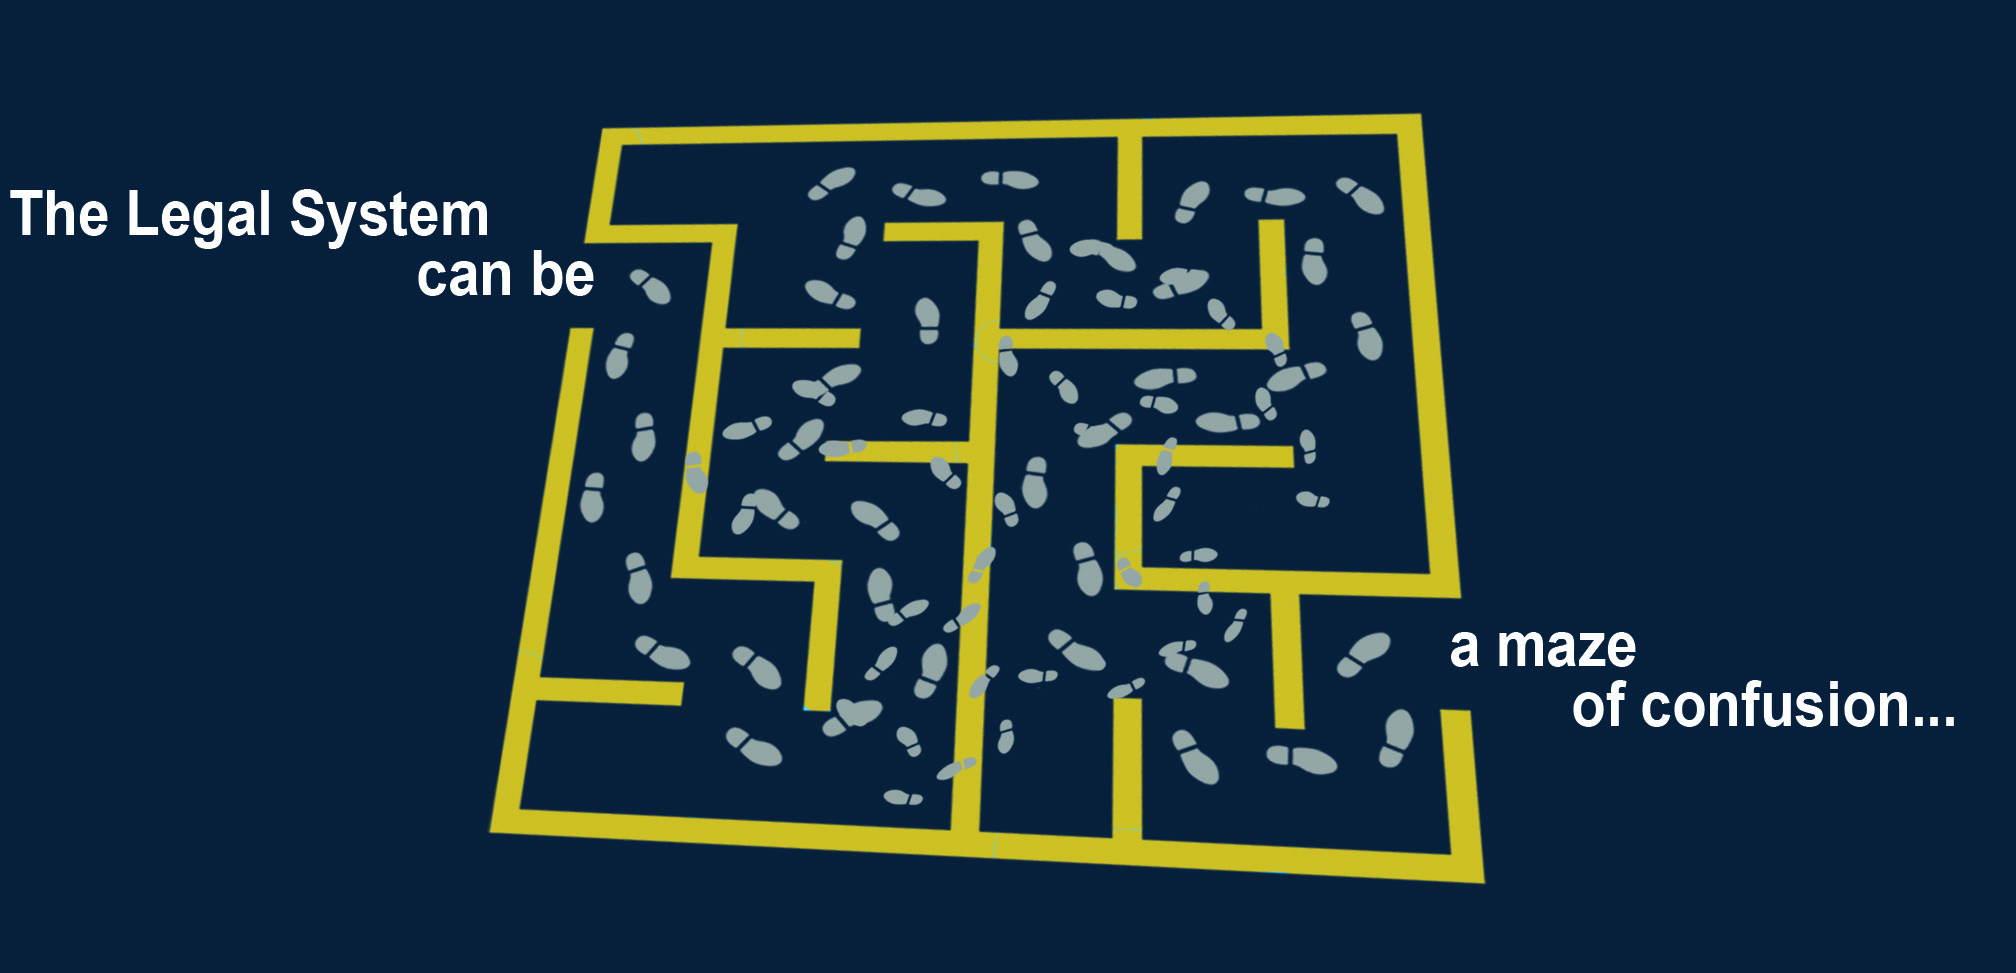 Maze with random footprints representing confusing legal system.